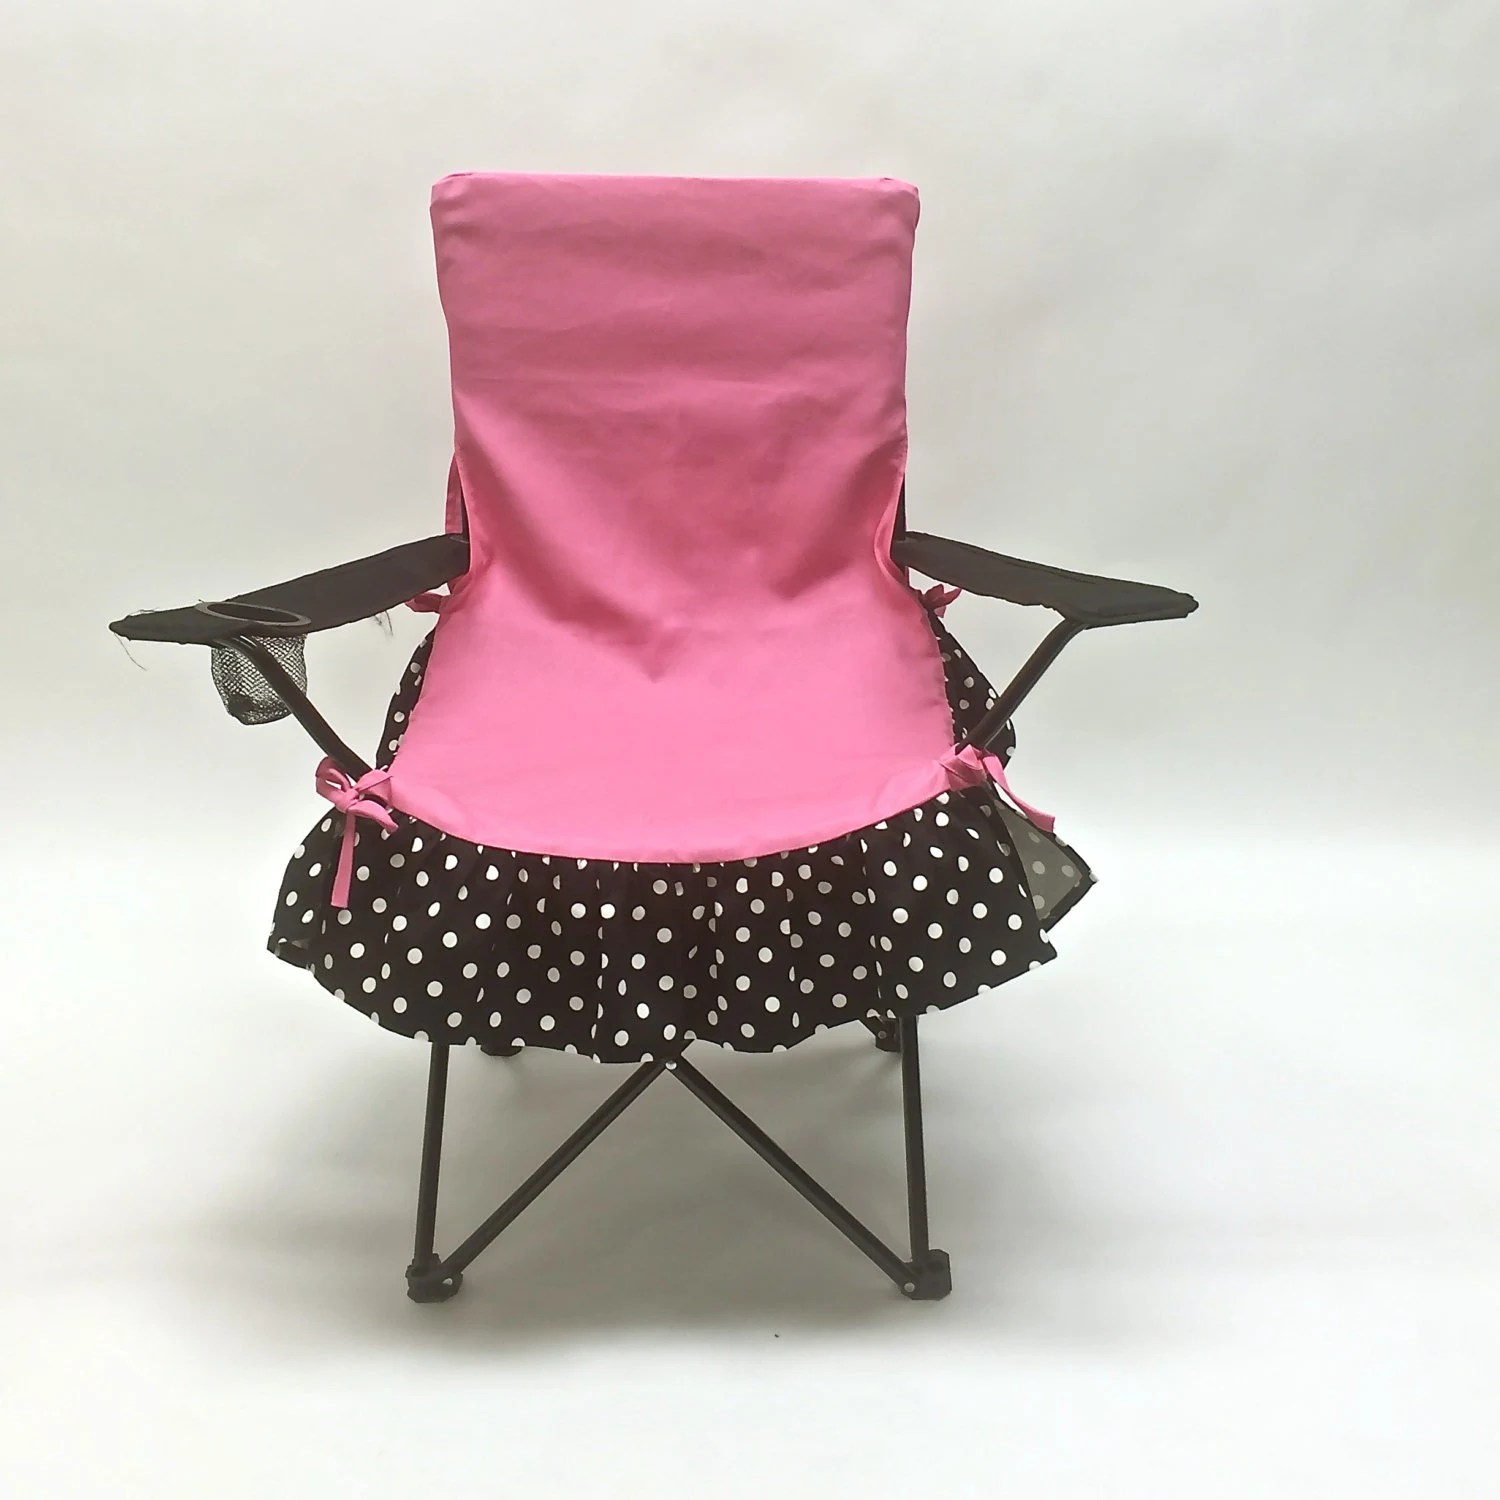 fancy chair covers metal outdoor table and chairs glamping accessory pink black by fabrinique